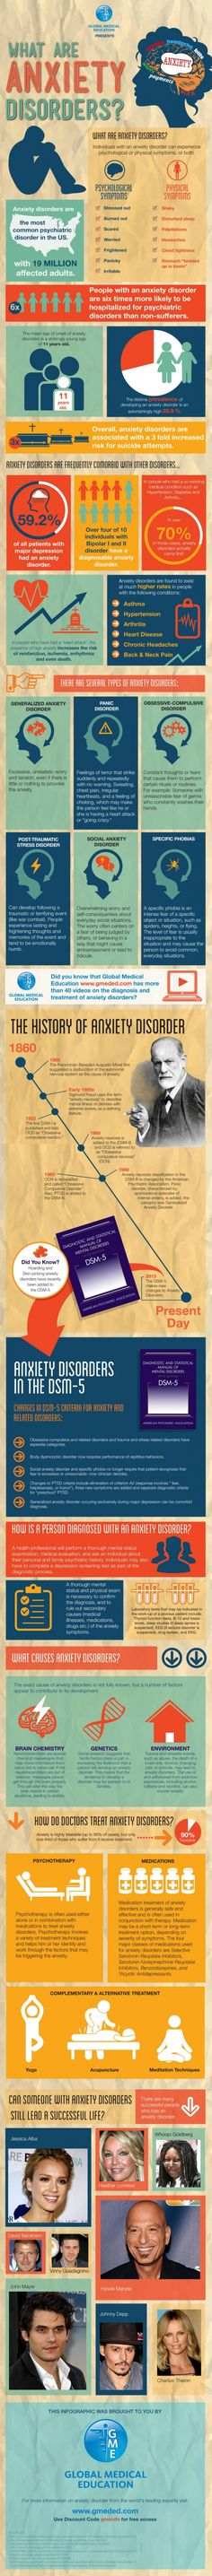 What are anxiety disorders? #socialanxiety #anxiety